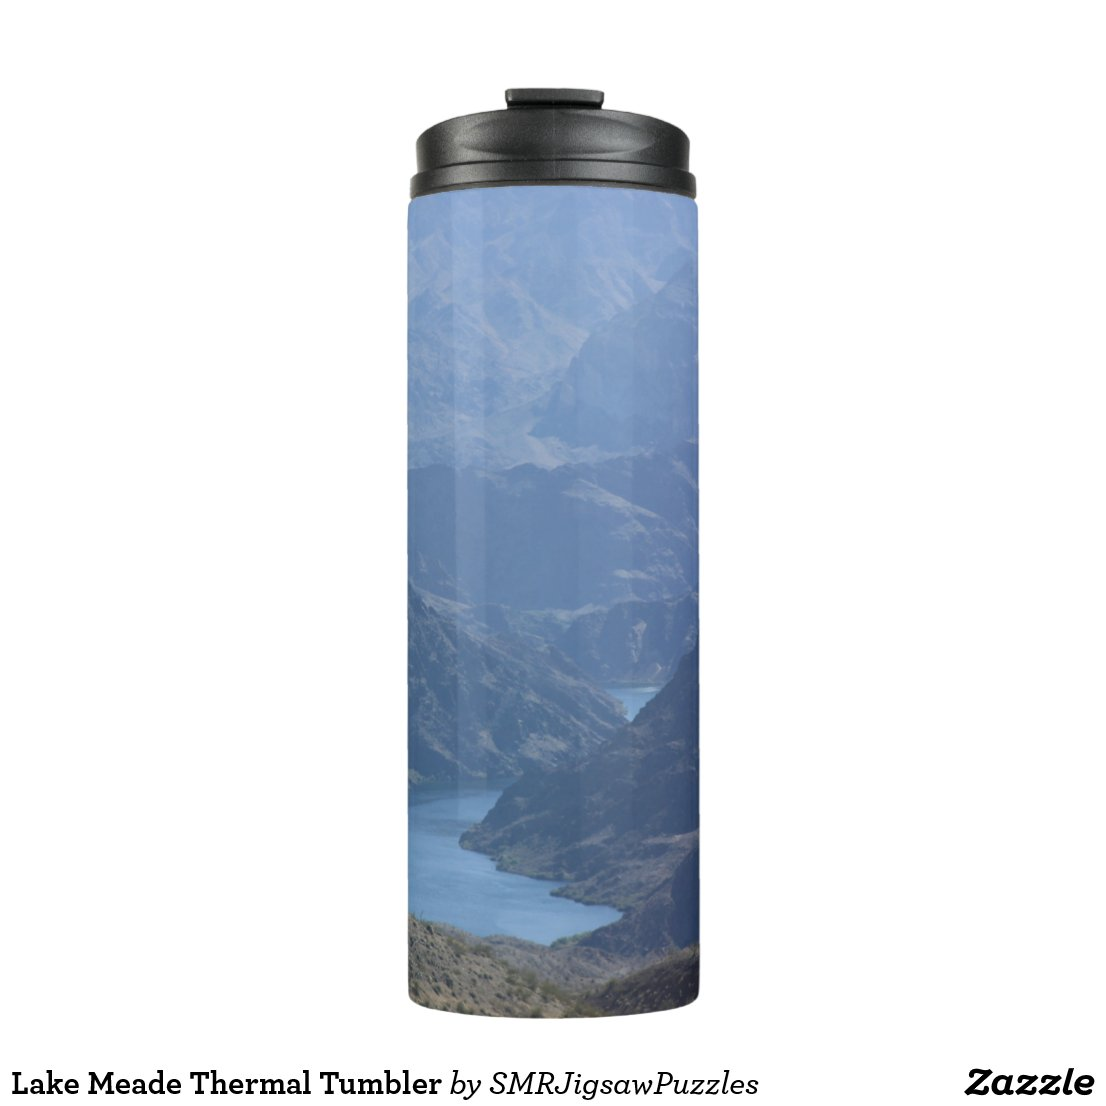 Lake Meade Thermal Tumbler